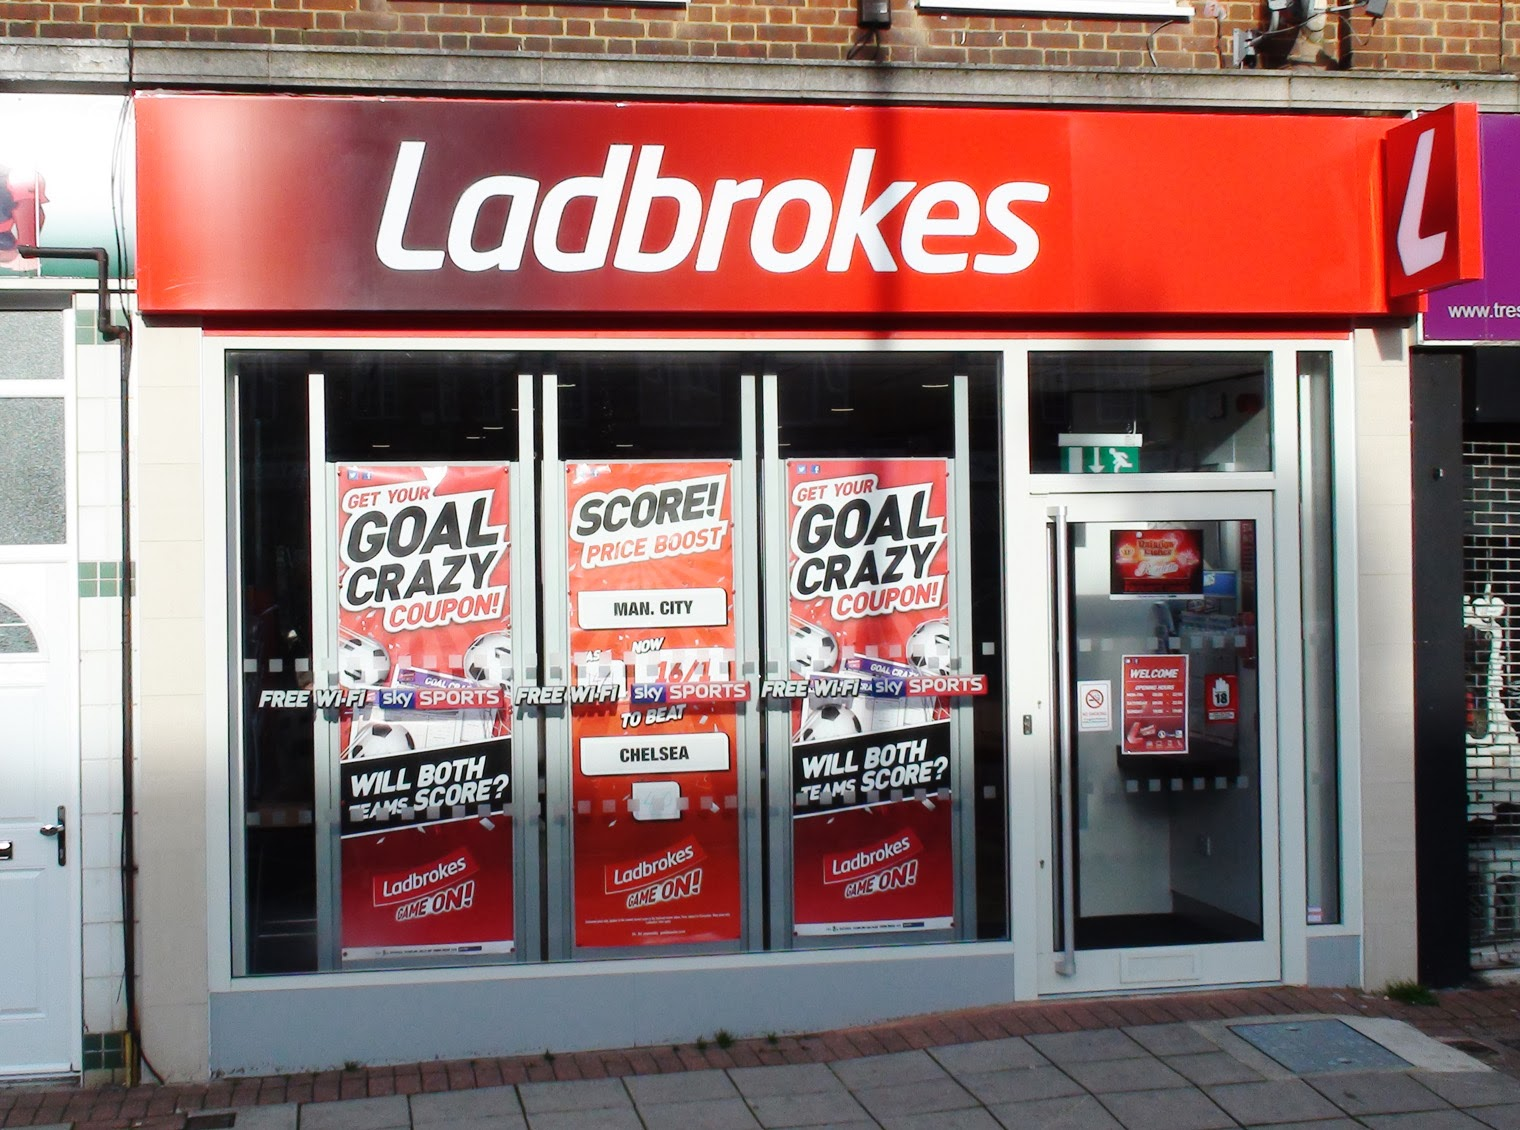 ladbrokes - photo #15